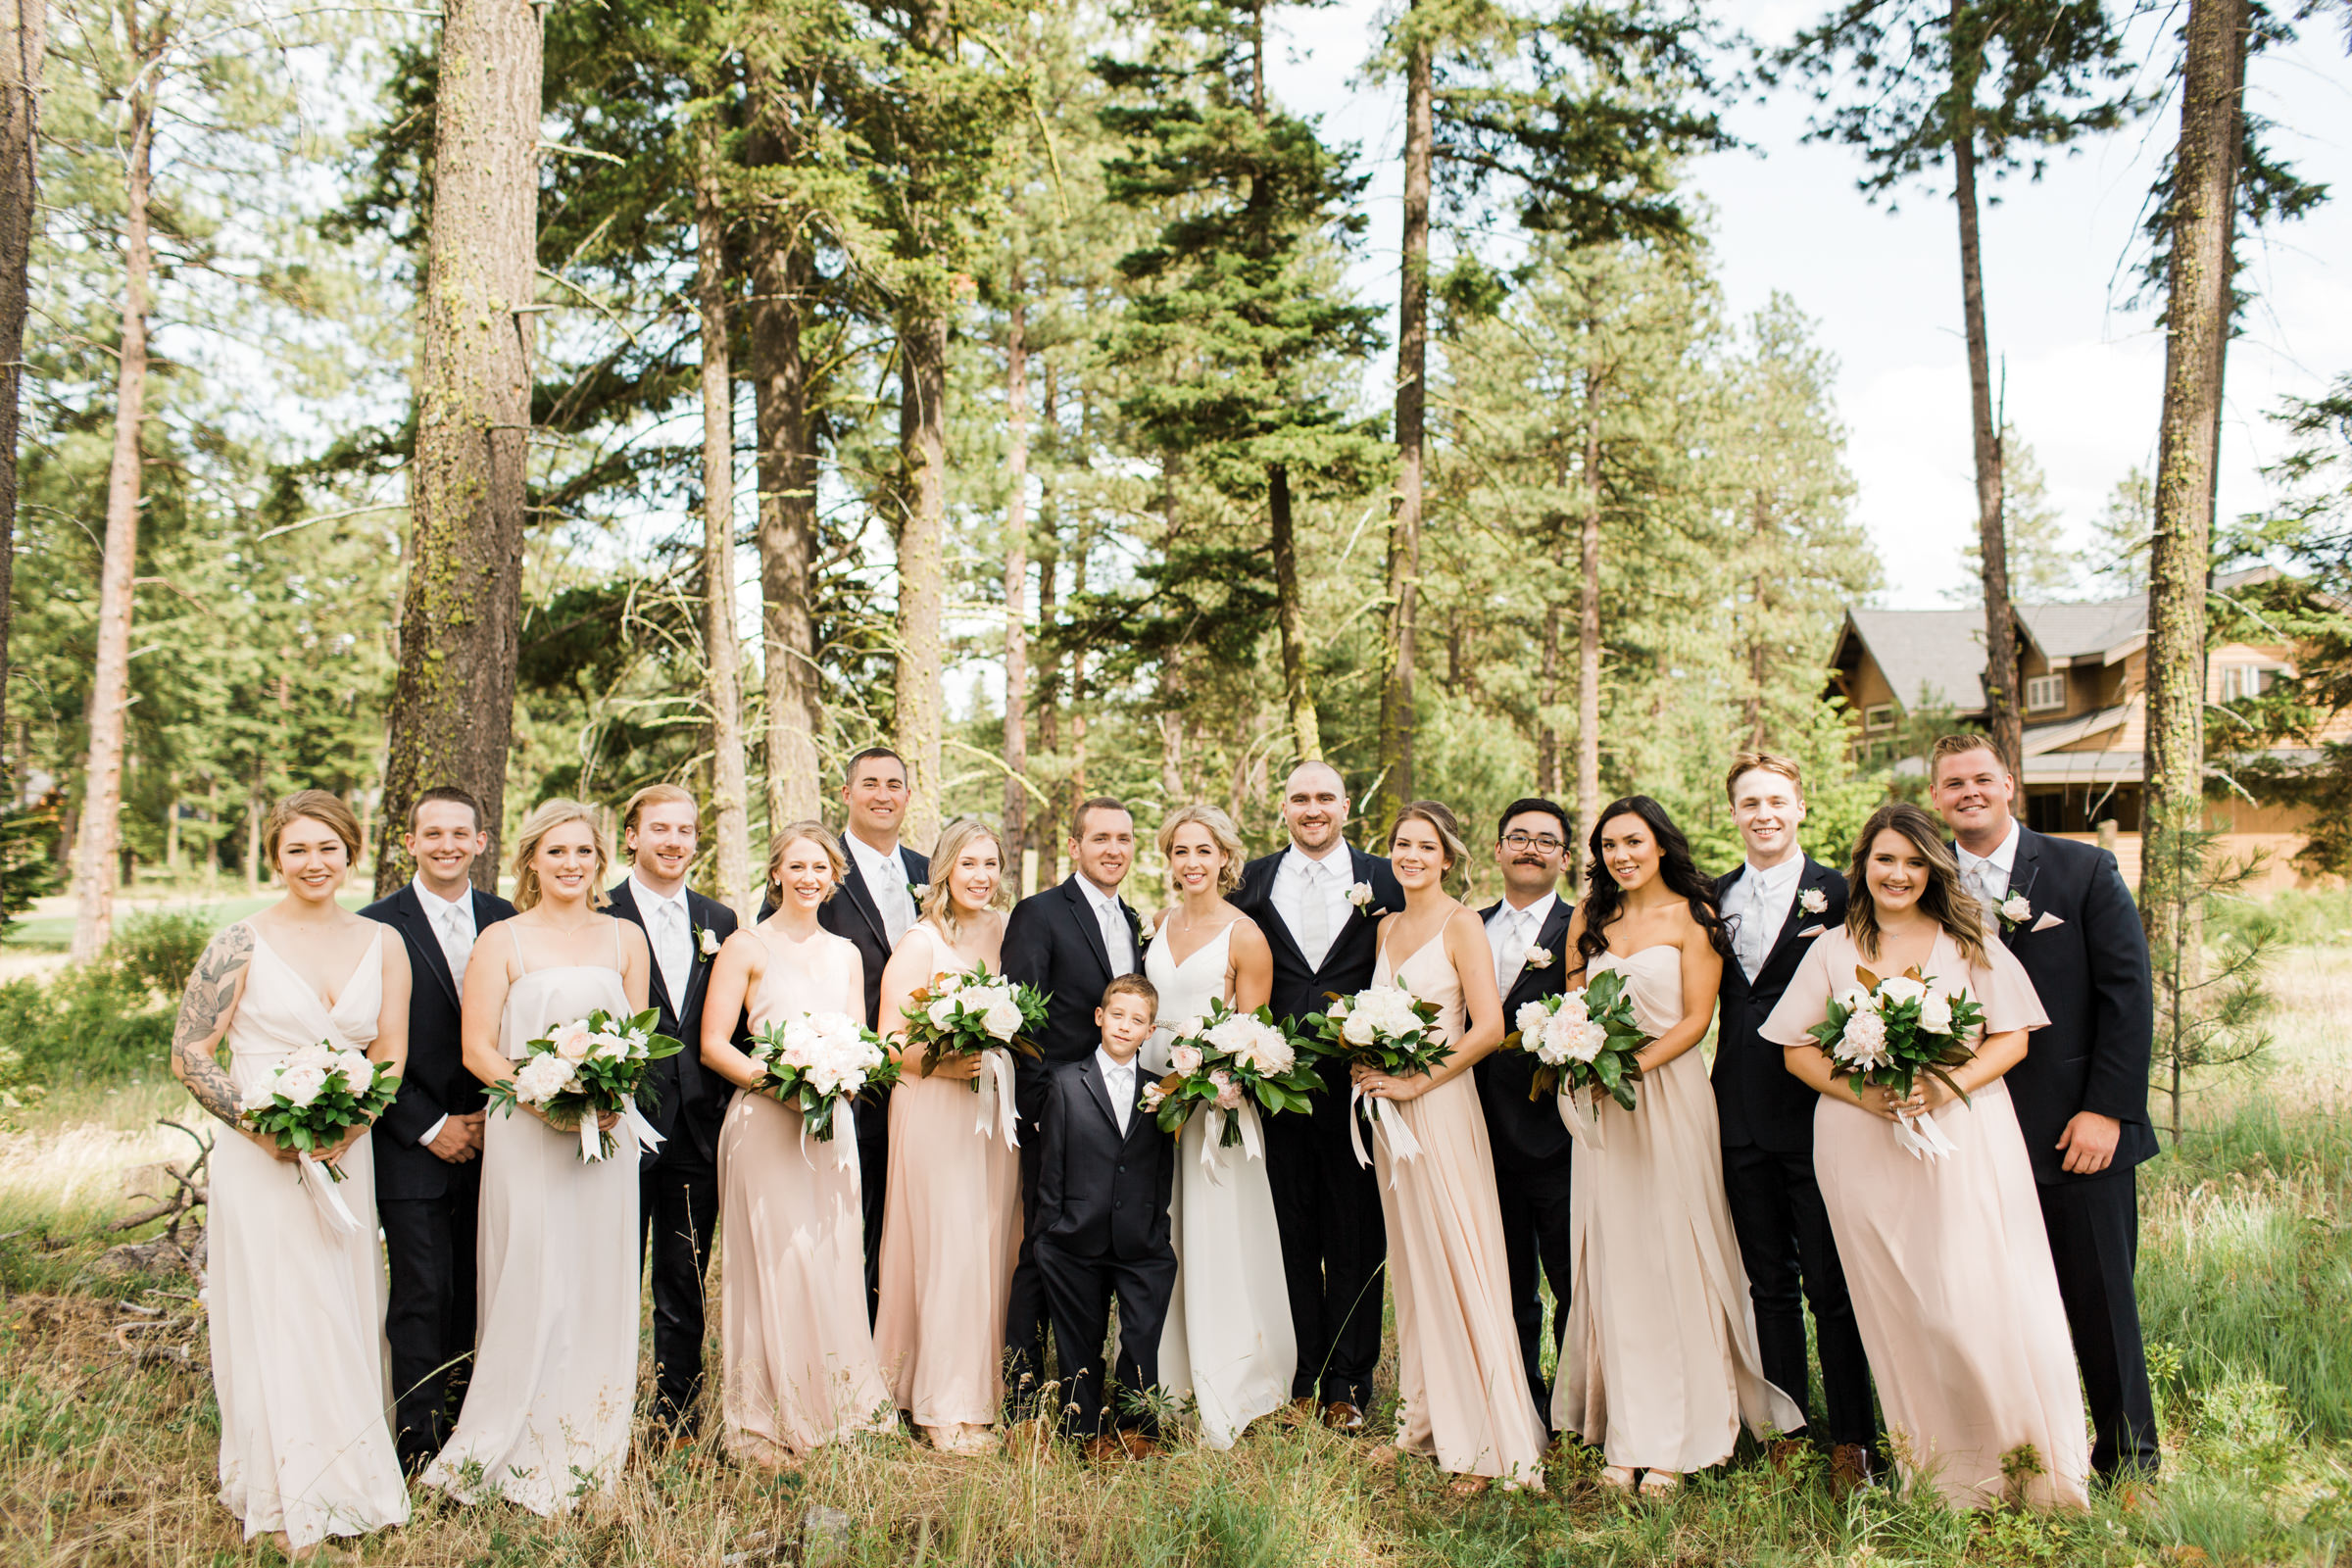 Bridal party photo at Willows Lodge by Stephanie Cristalli Photography